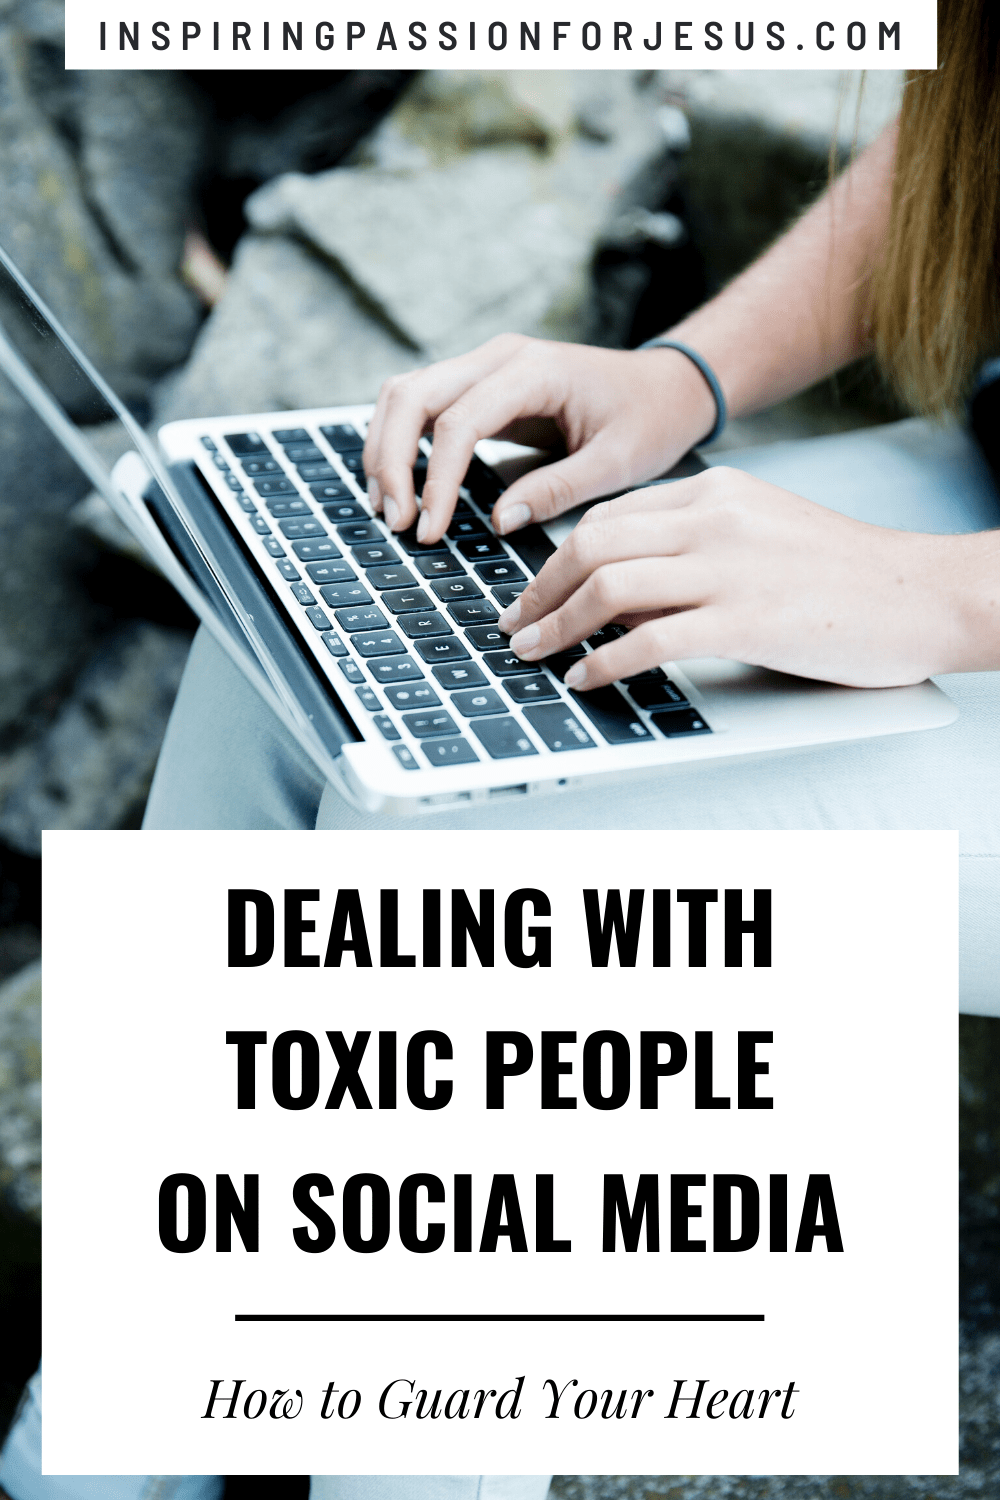 Dealing with Toxic People on Social Media - How to Guard Your Heart